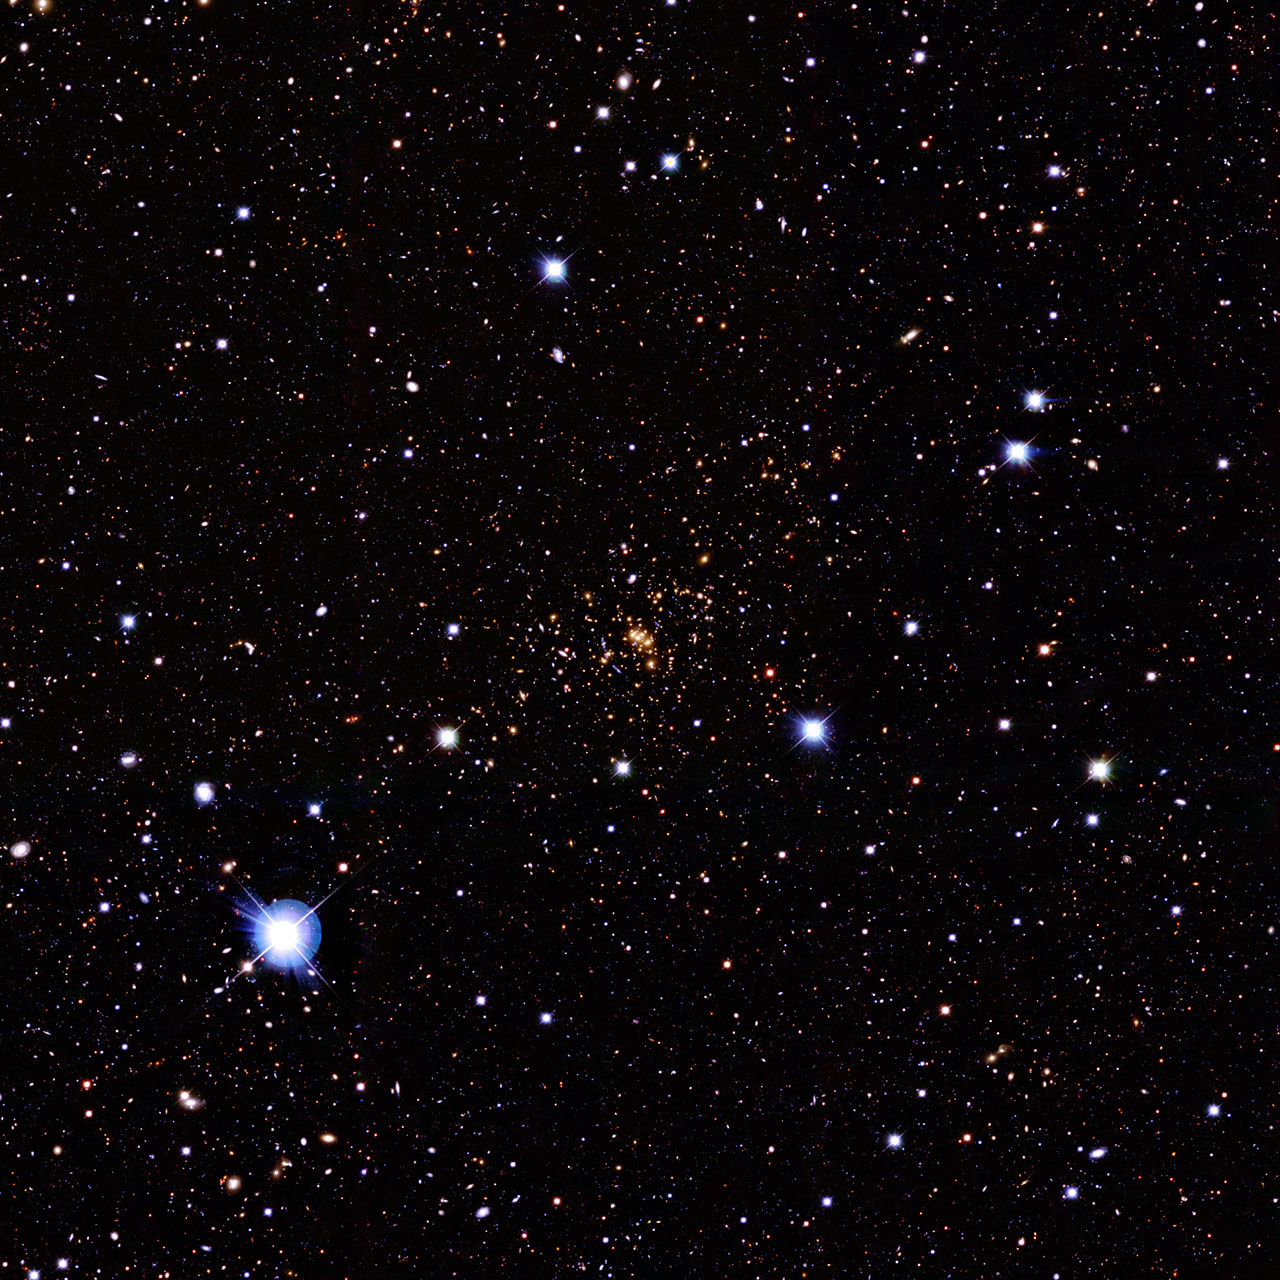 Ground-based image of the galaxy cluster CL0024+1654